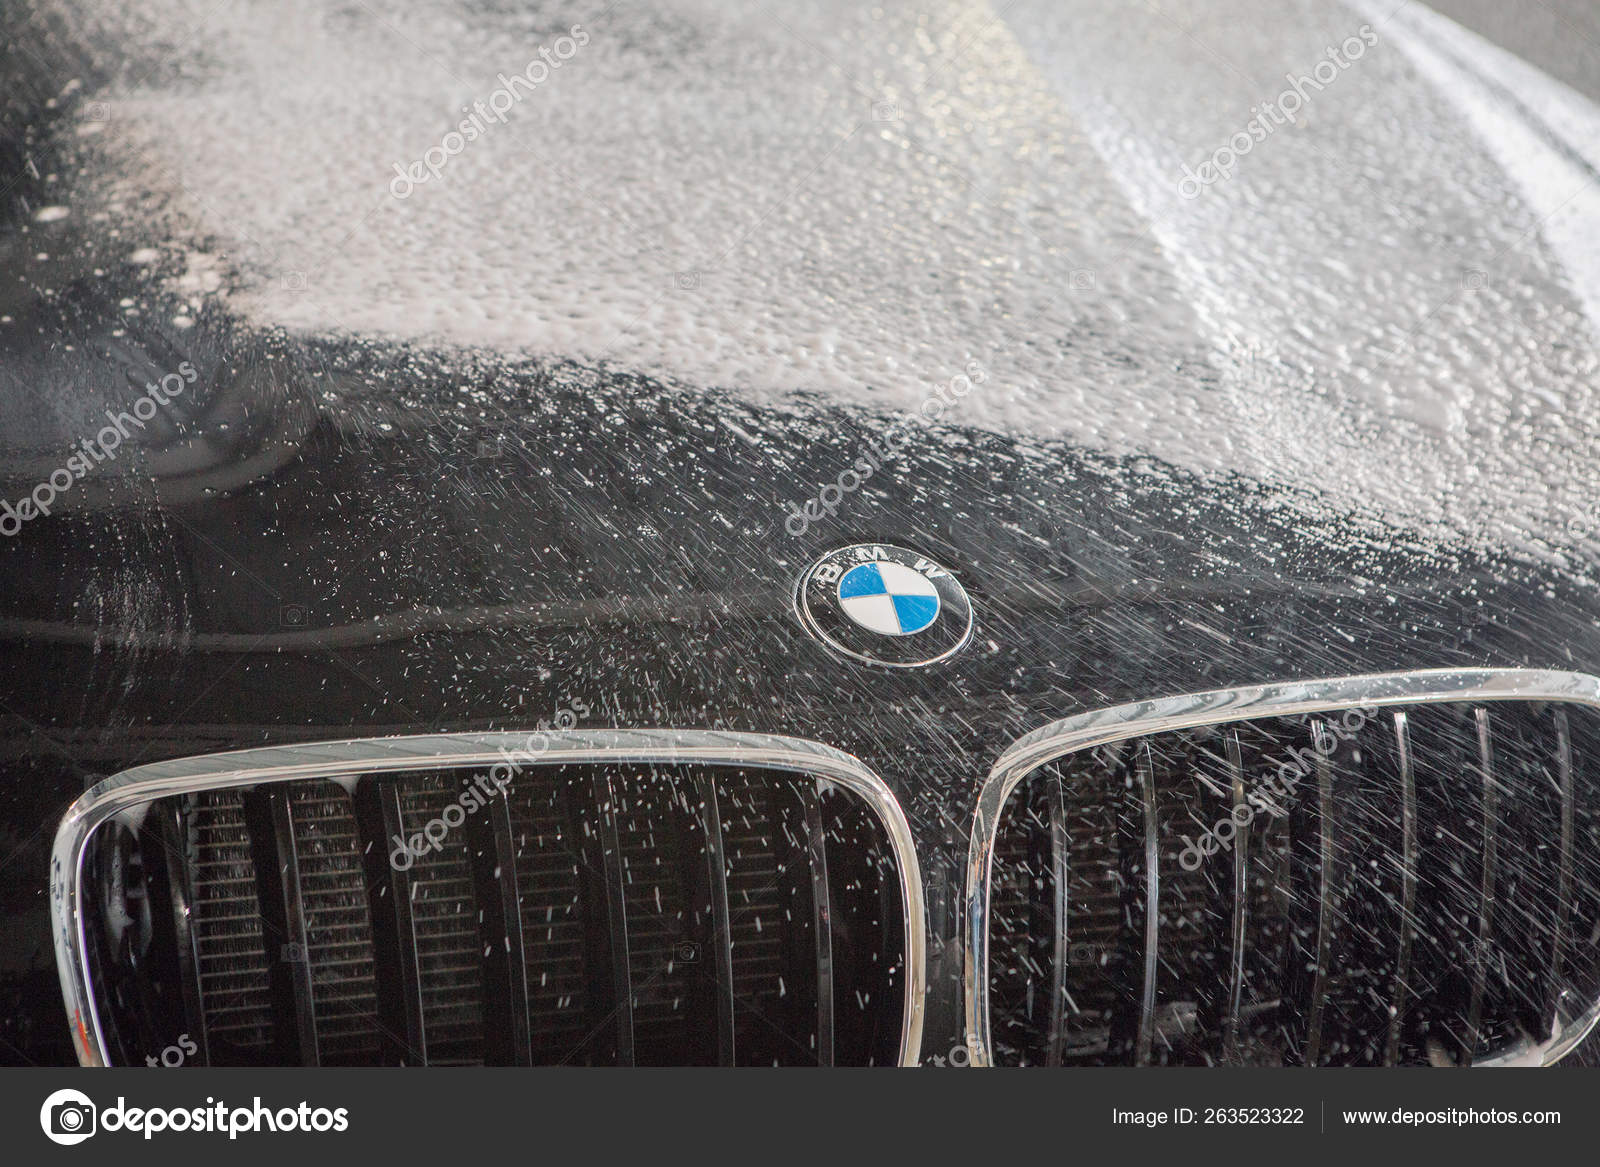 hight resolution of car repair car advertising car wash bmw advertising moscow 1 11 2018 bmw motor company badge in front of the black car bmw german company for the